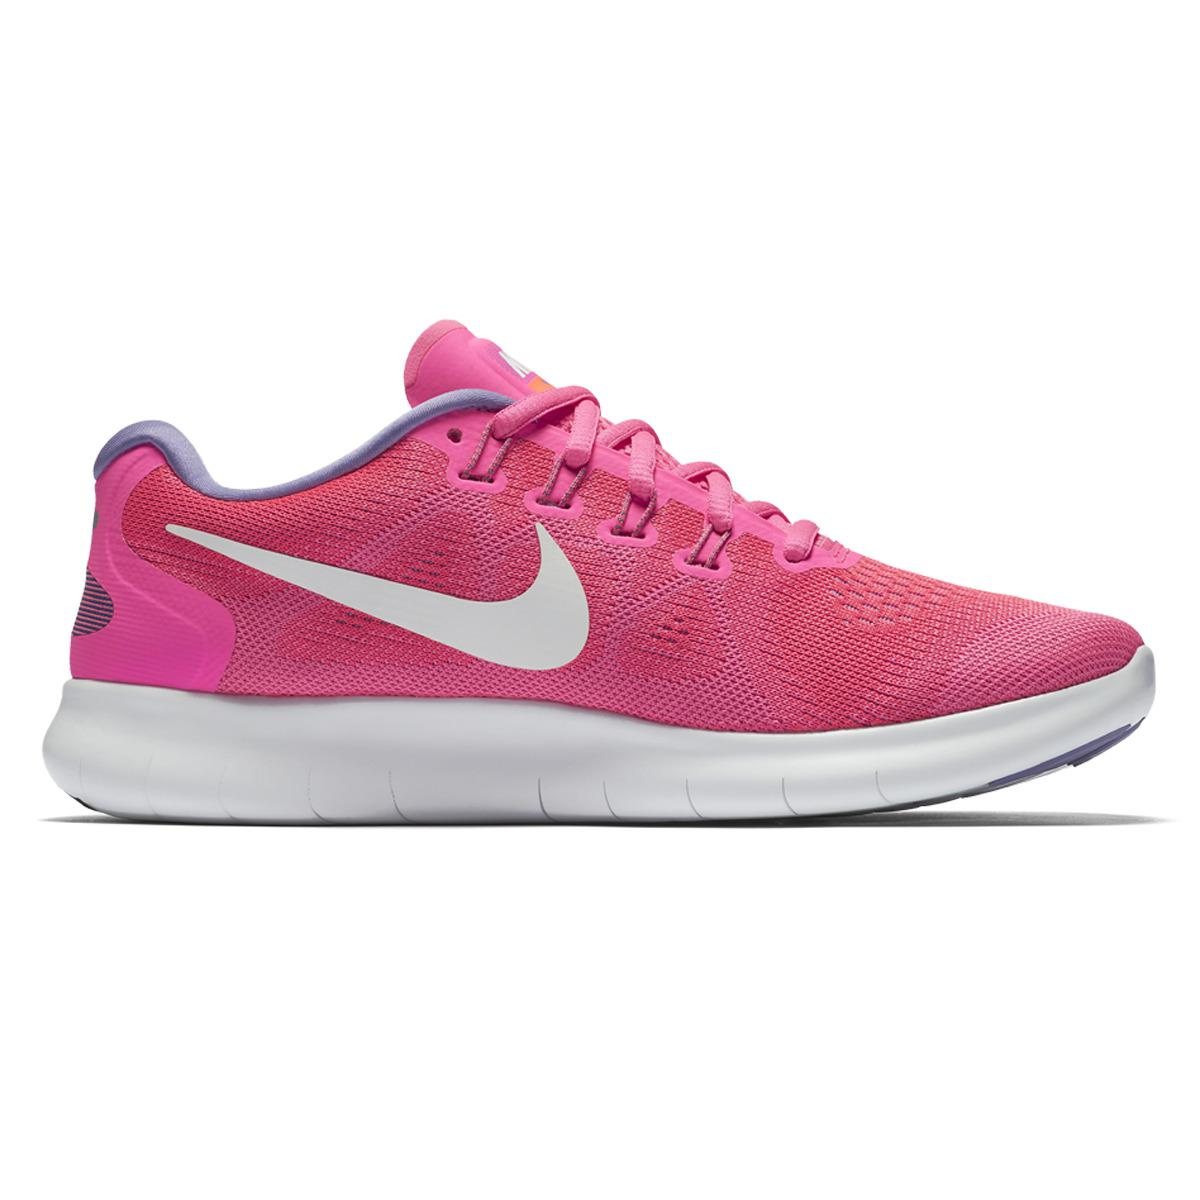 lyst nike free run 2 running shoes in pink. Black Bedroom Furniture Sets. Home Design Ideas